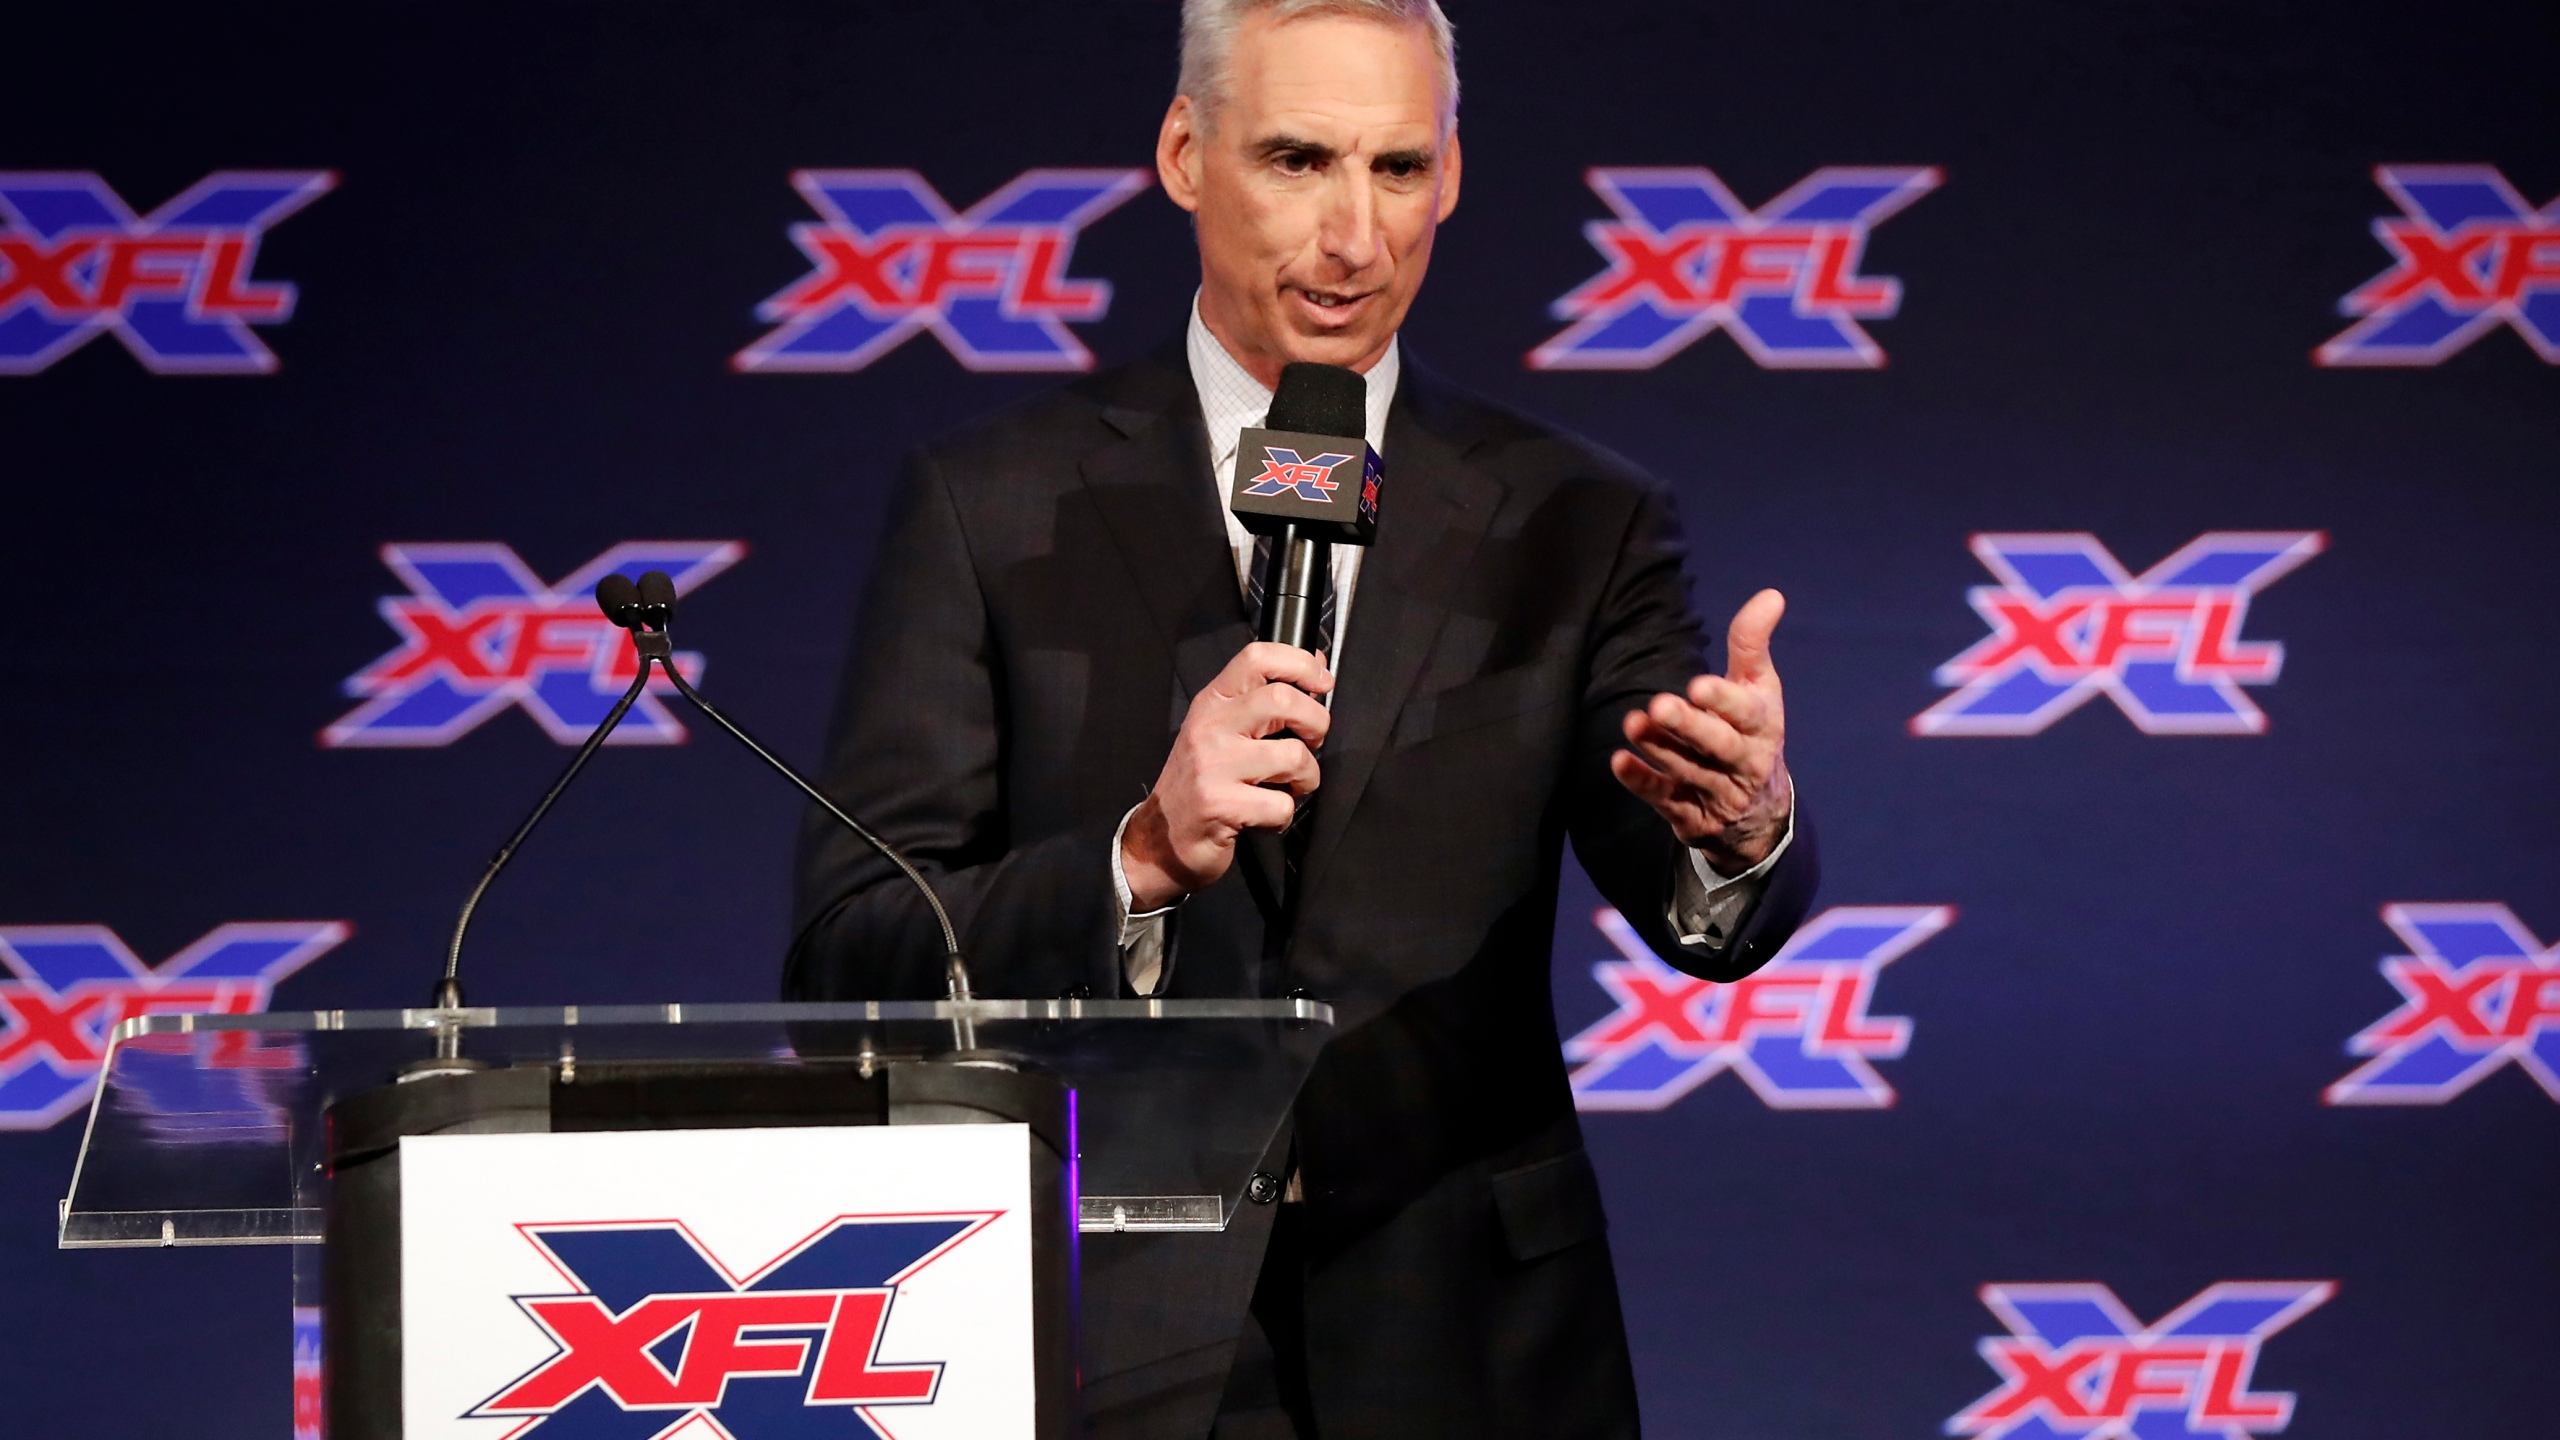 XFL_Dallas_Football_82831-159532.jpg88269113